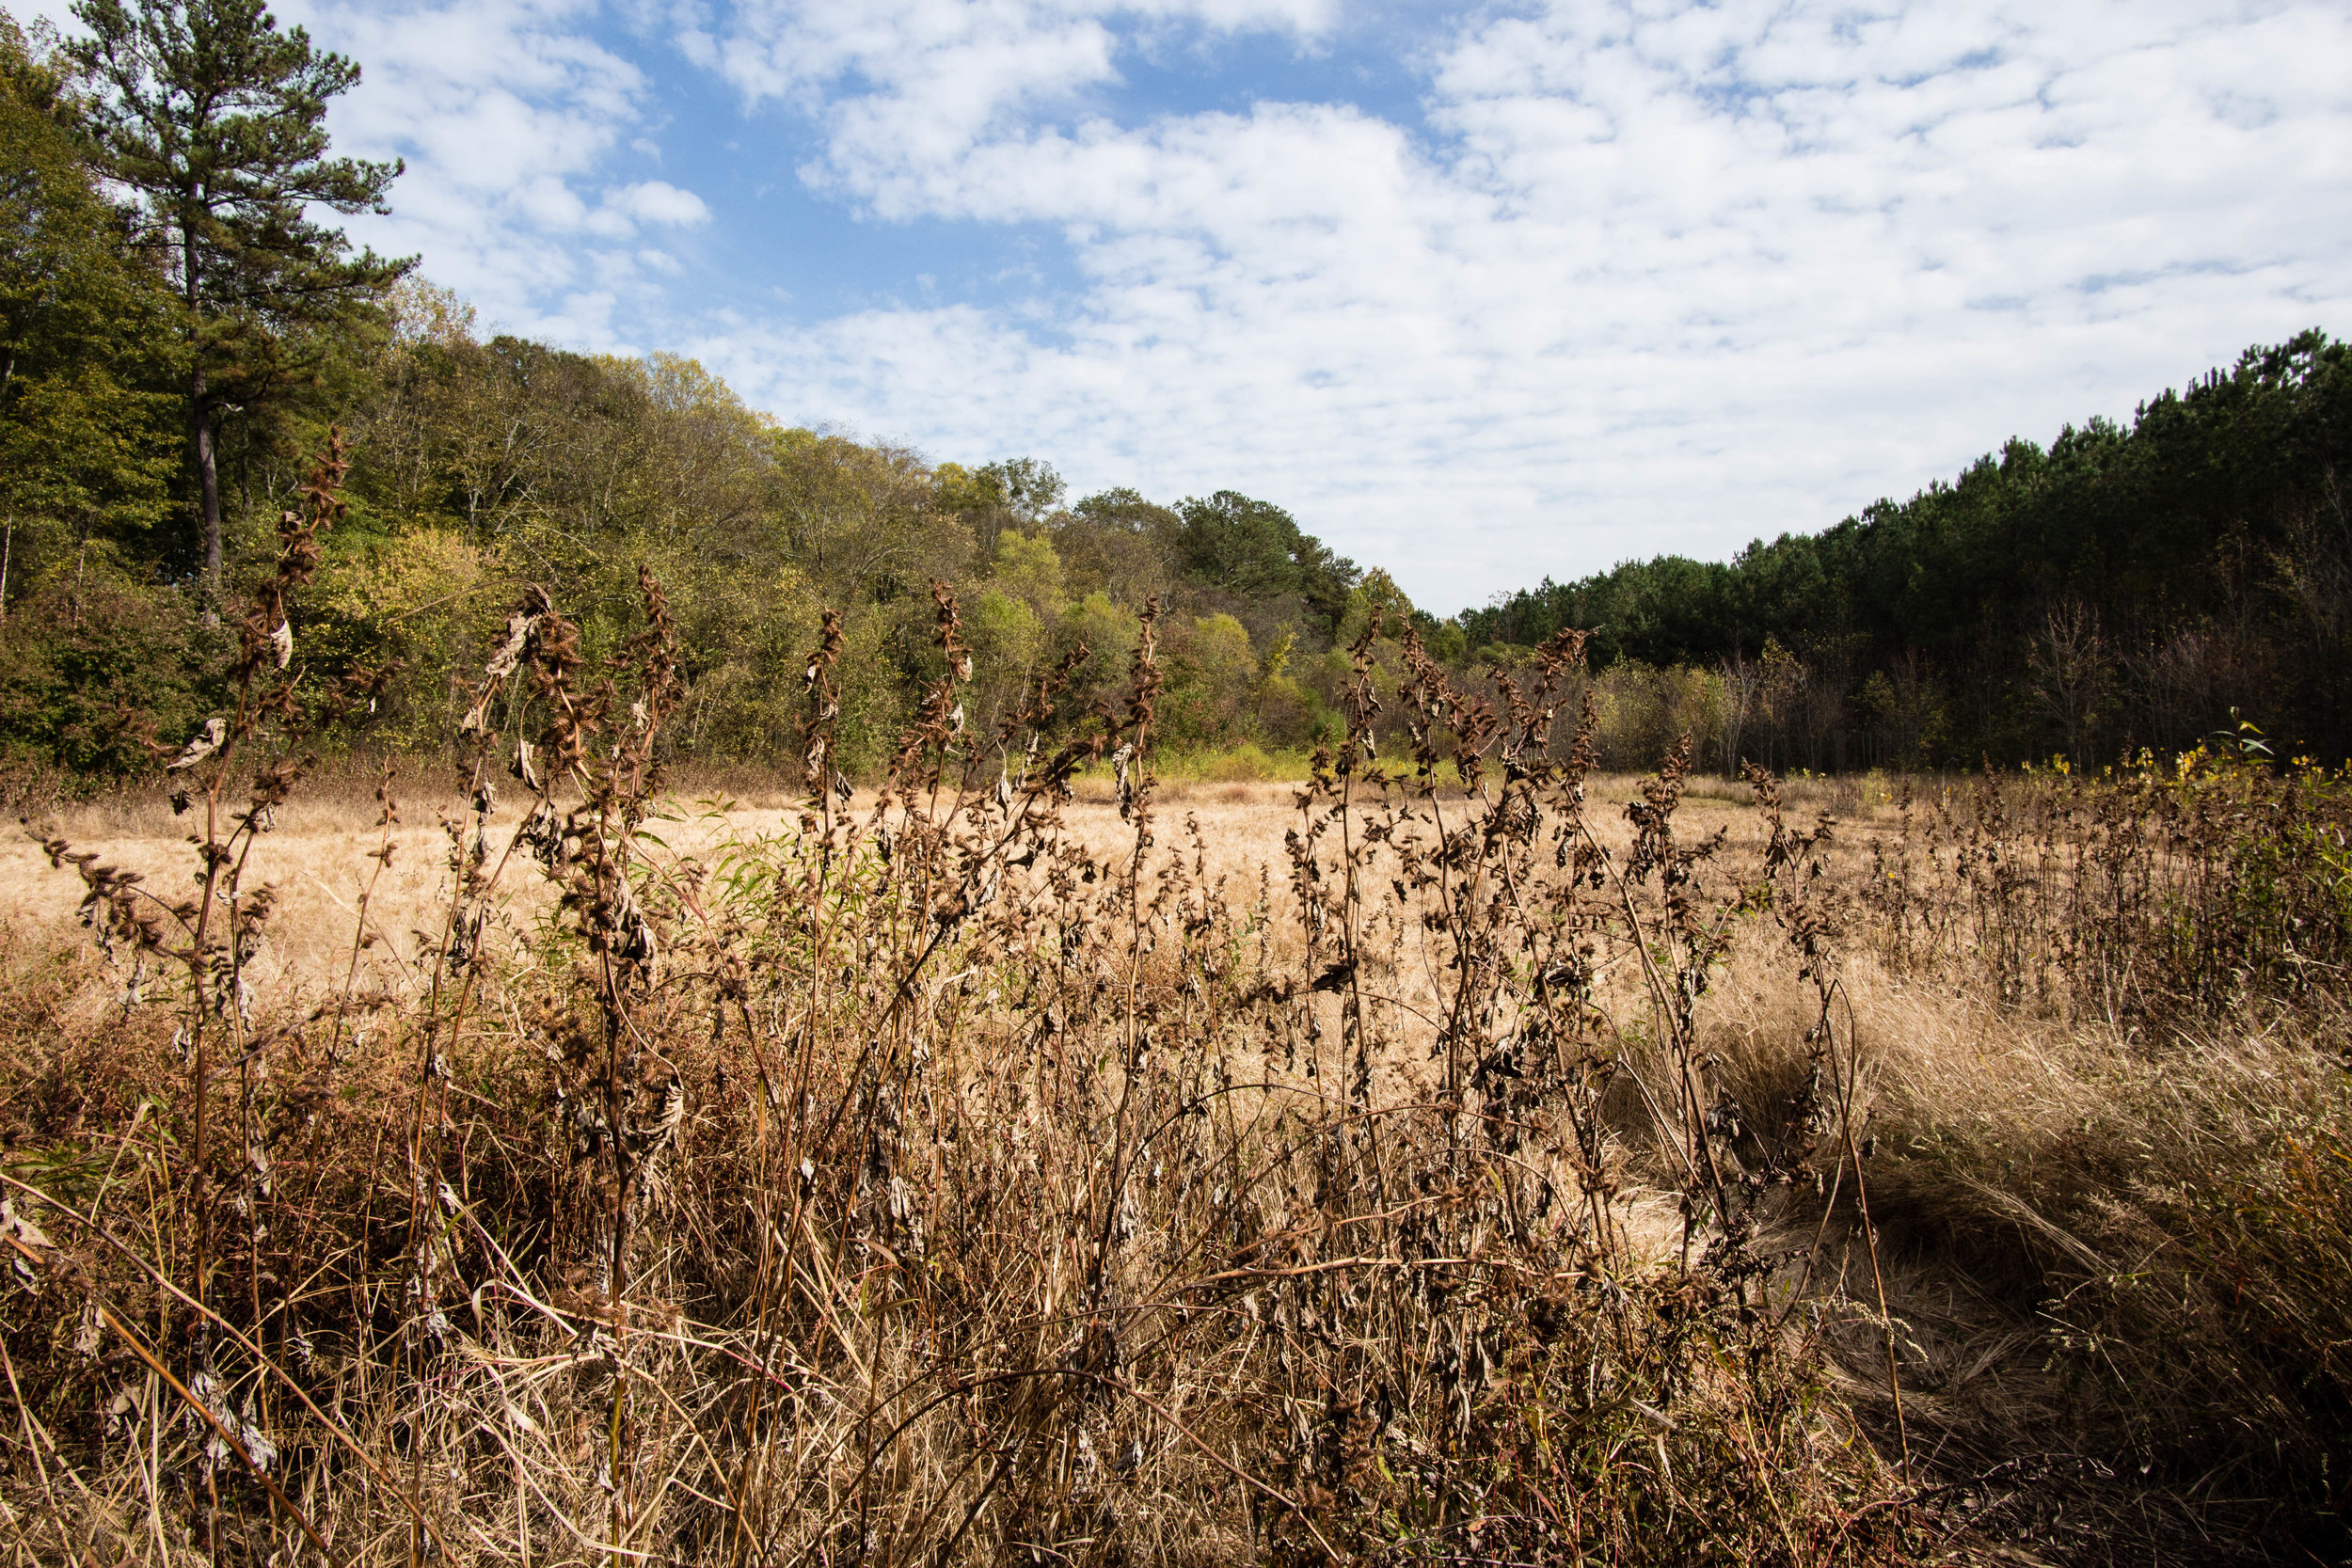 Inside the beaver pond during the drought, November 12, 2016